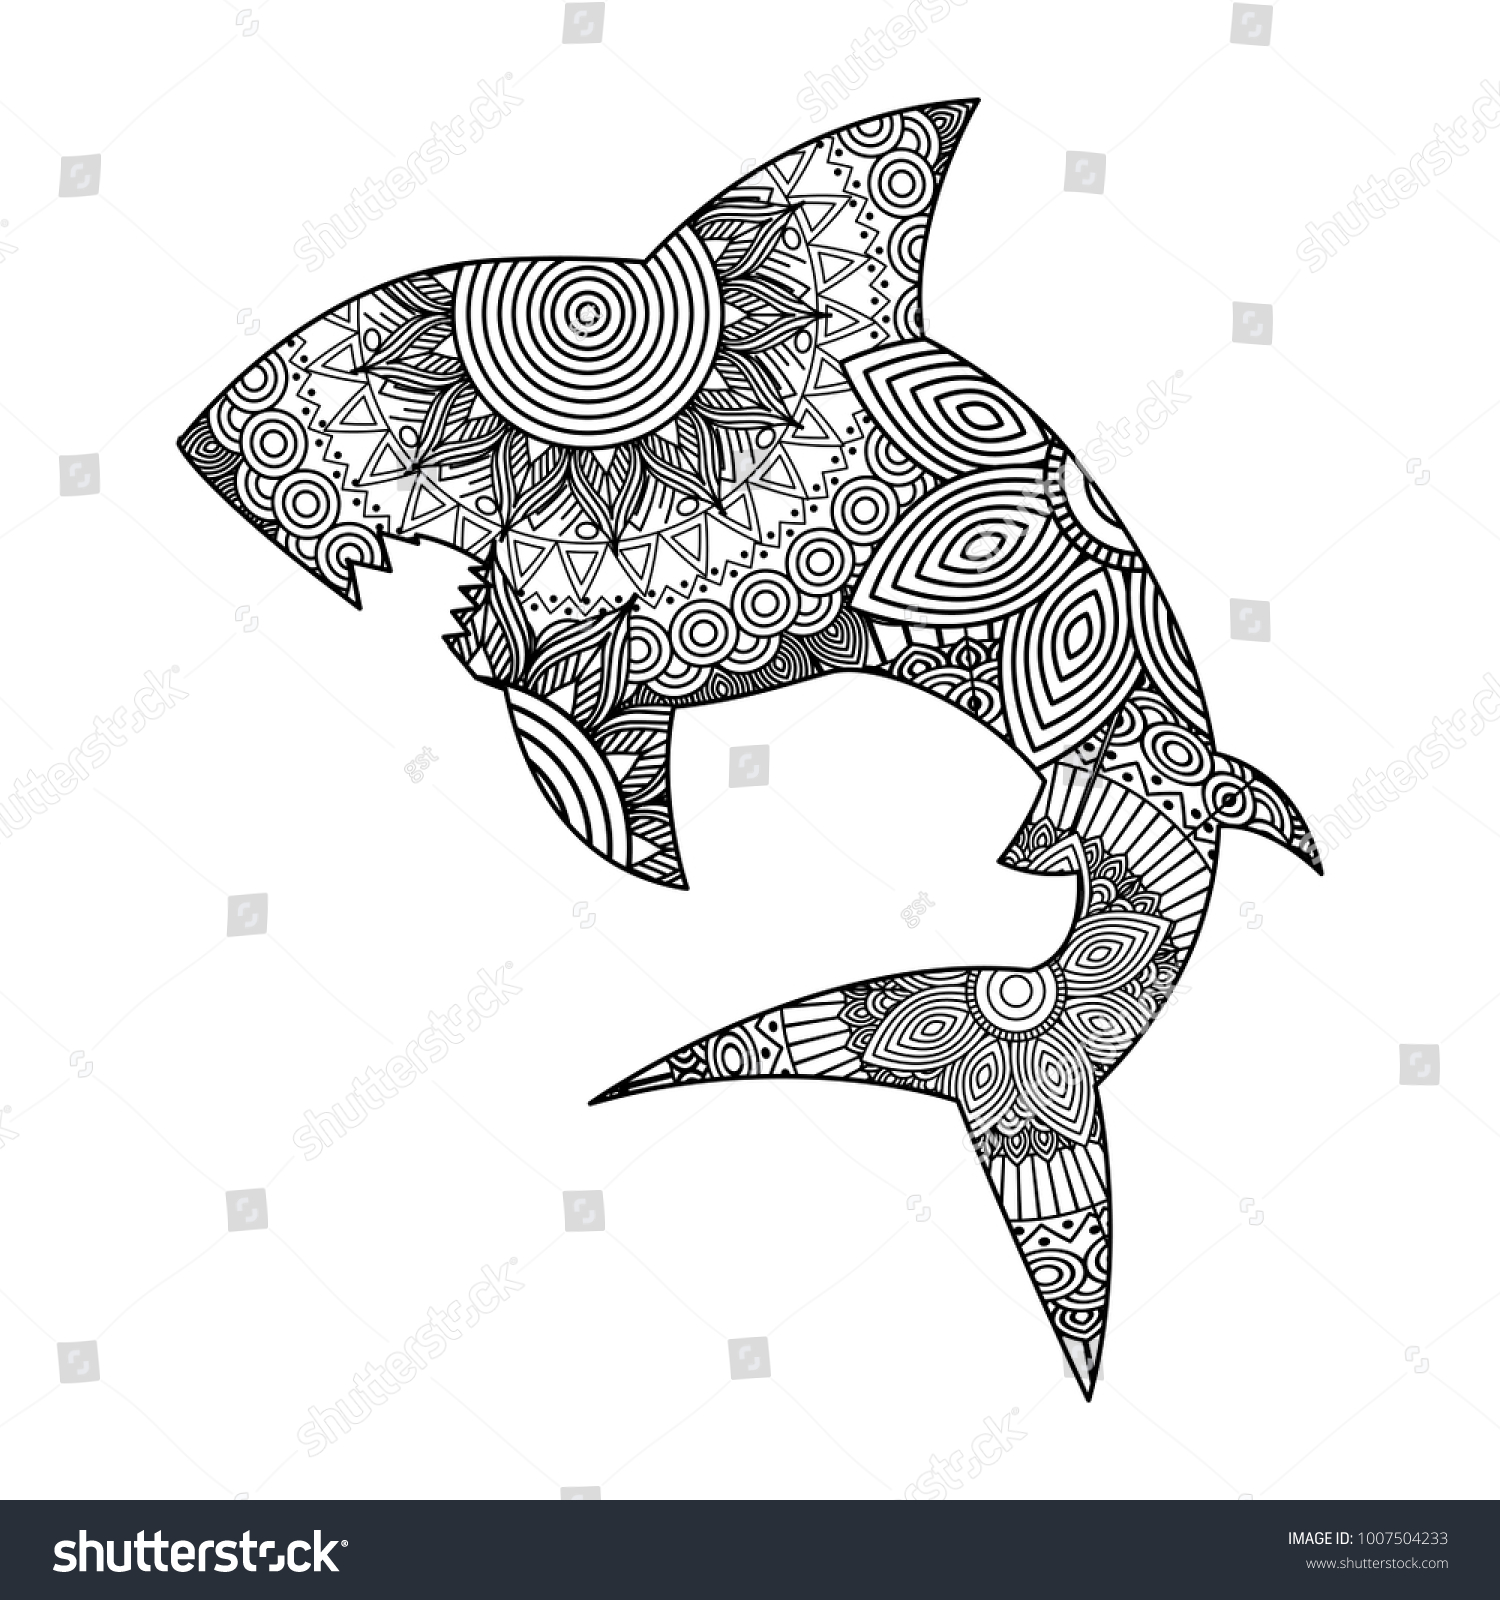 Hand Drawn Adult Coloring Pages Shark Stock Vector (Royalty Free ...